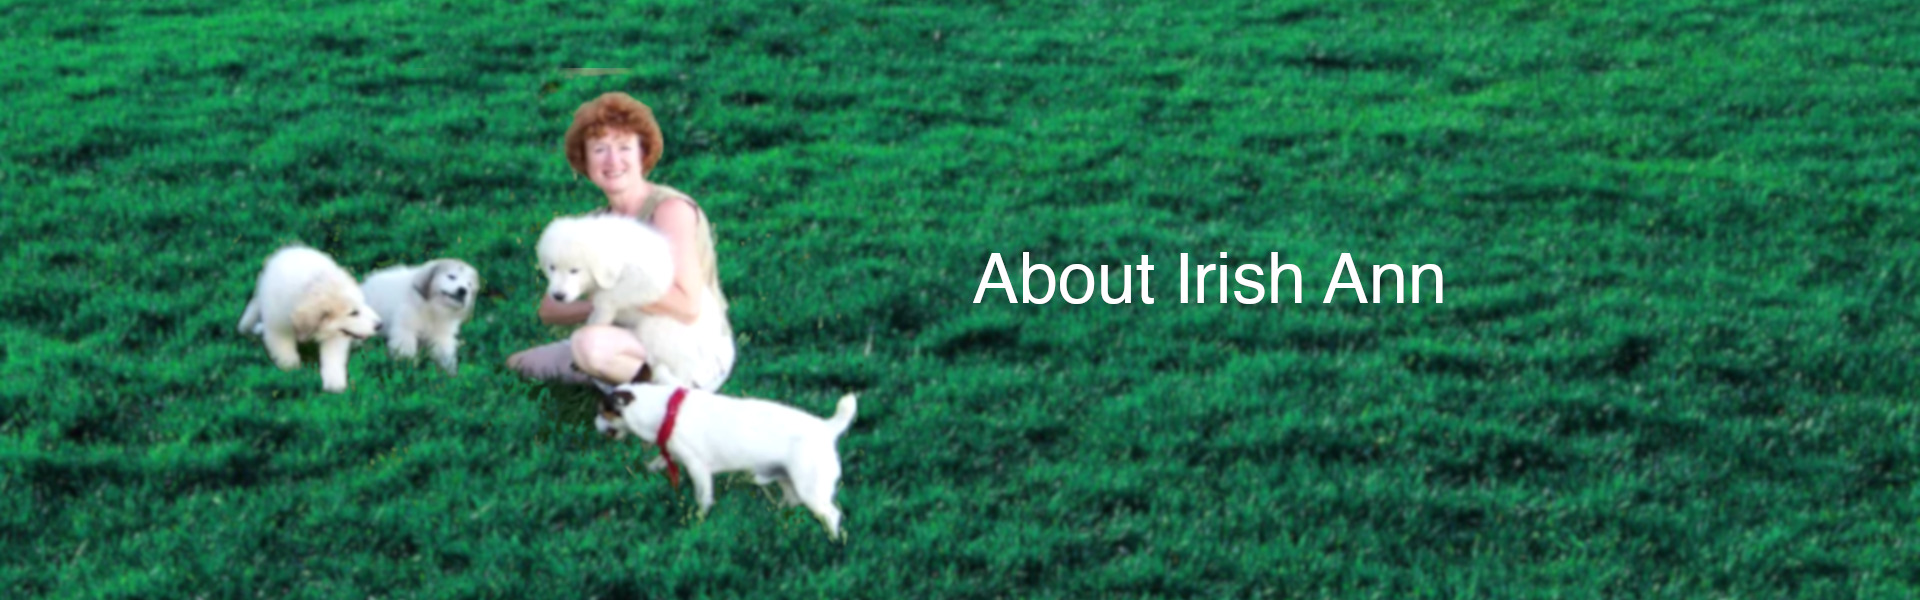 link to About Irish Ann